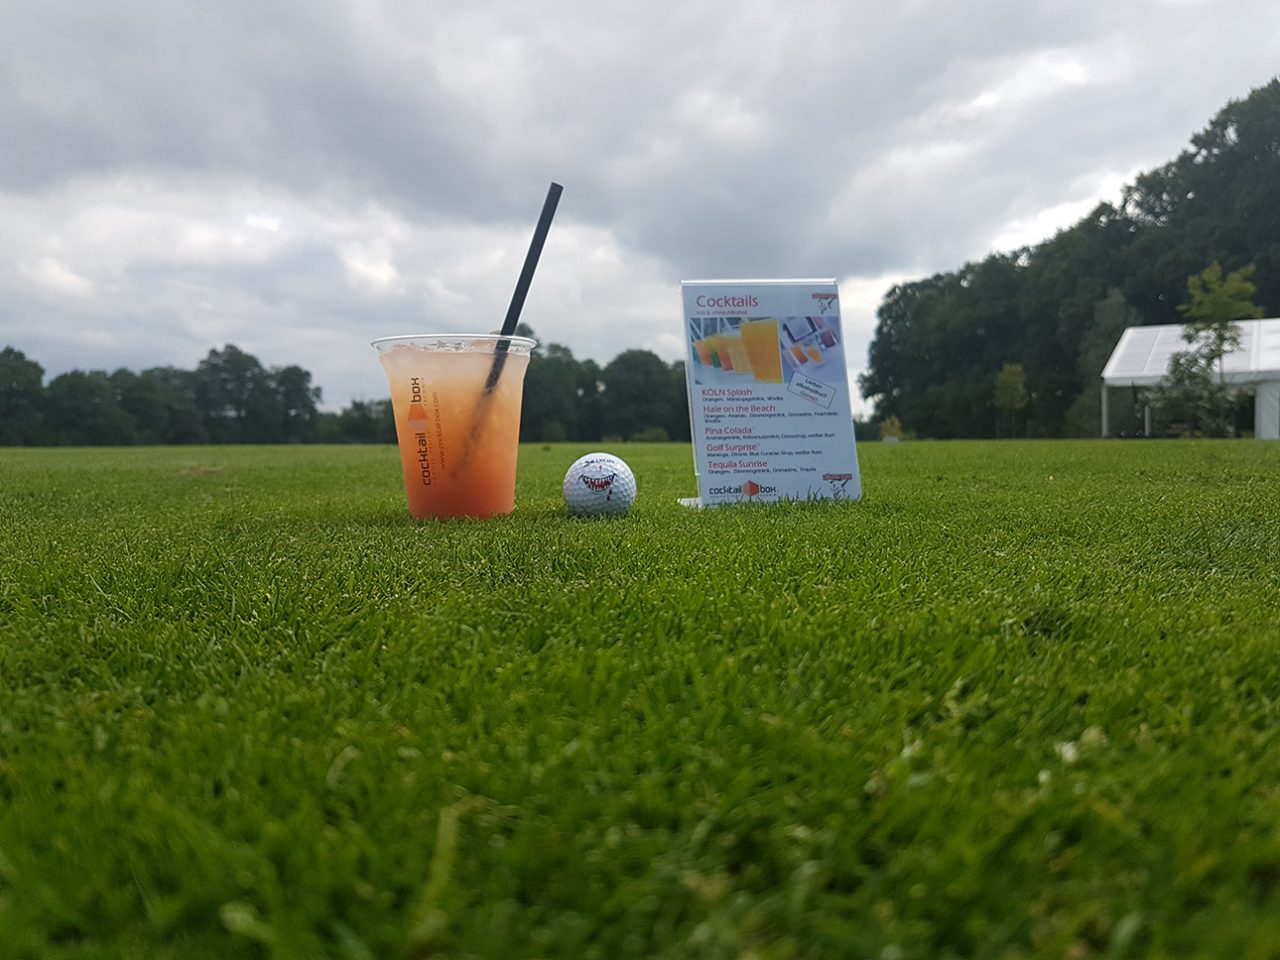 HaieGolfTurnier2017_cocktail-box_1